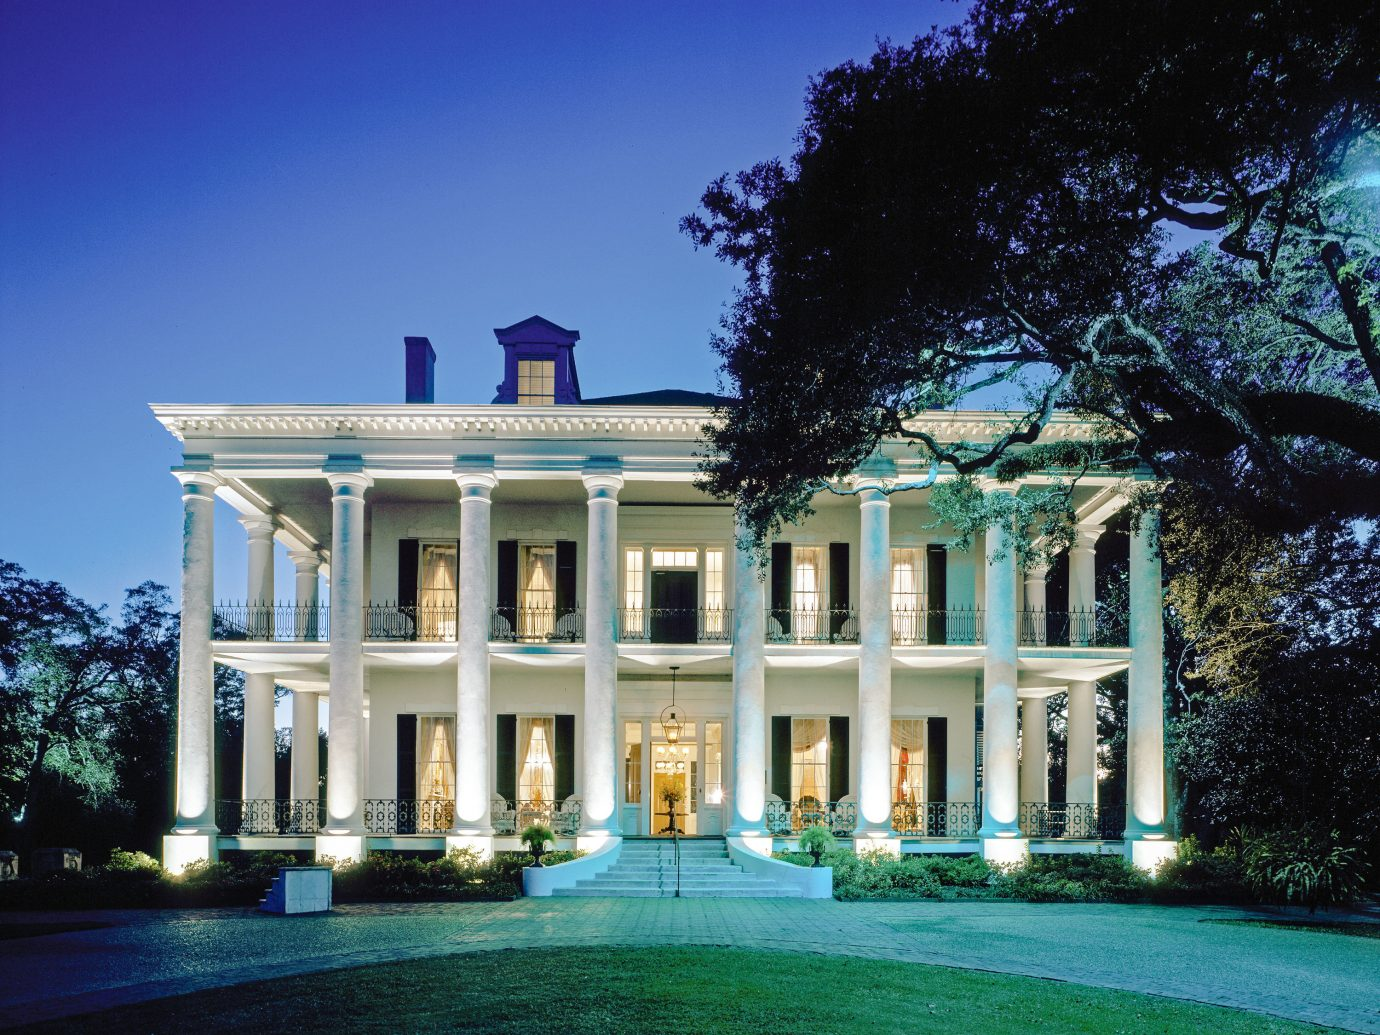 Trip Ideas tree estate building outdoor property mansion home house real estate Architecture lighting classical architecture Villa residential area historic house facade official residence elevation plantation landscape lighting mixed use manor house sky corporate headquarters window government building